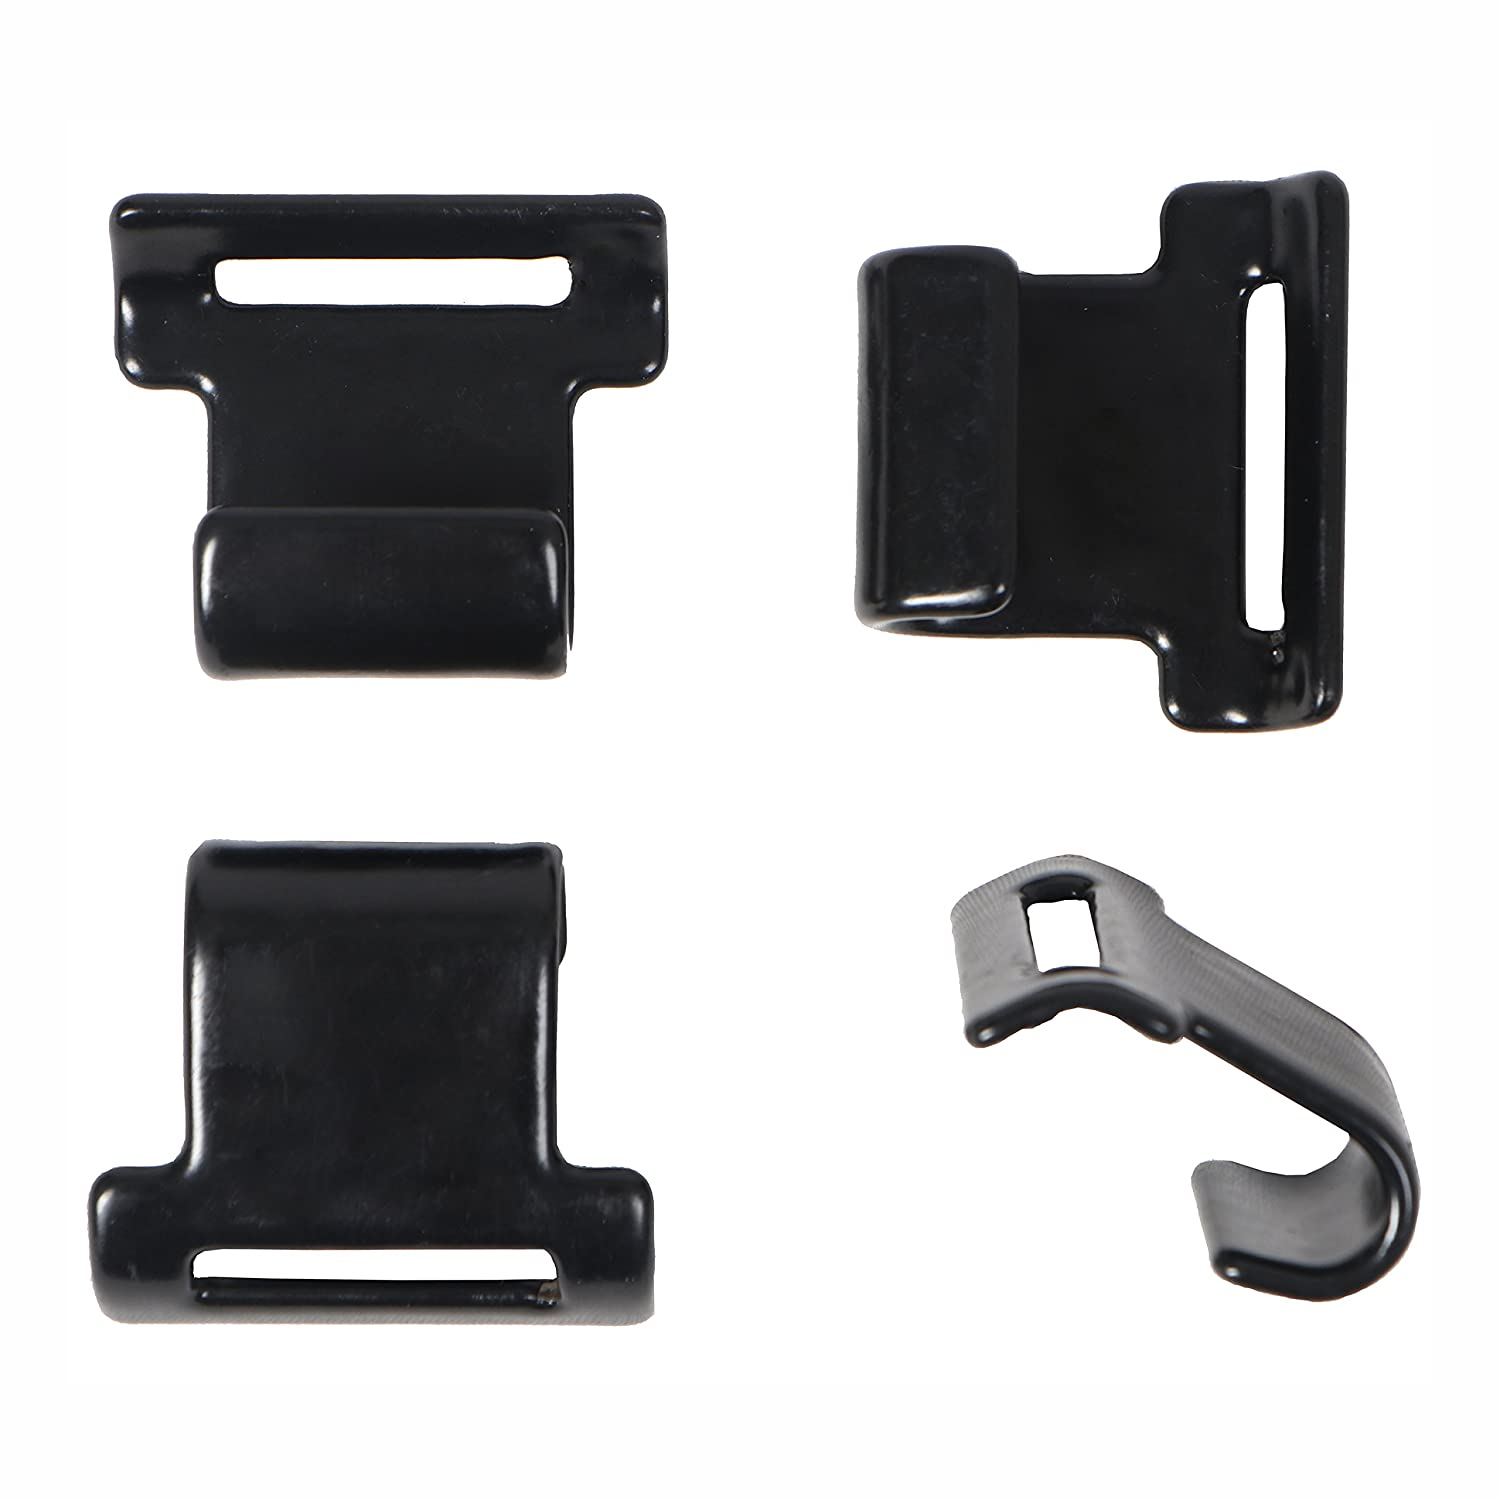 Rightline Gear 100600 Car Clips for Soft Car Top Carriers on Vehicles Without Roof Rack